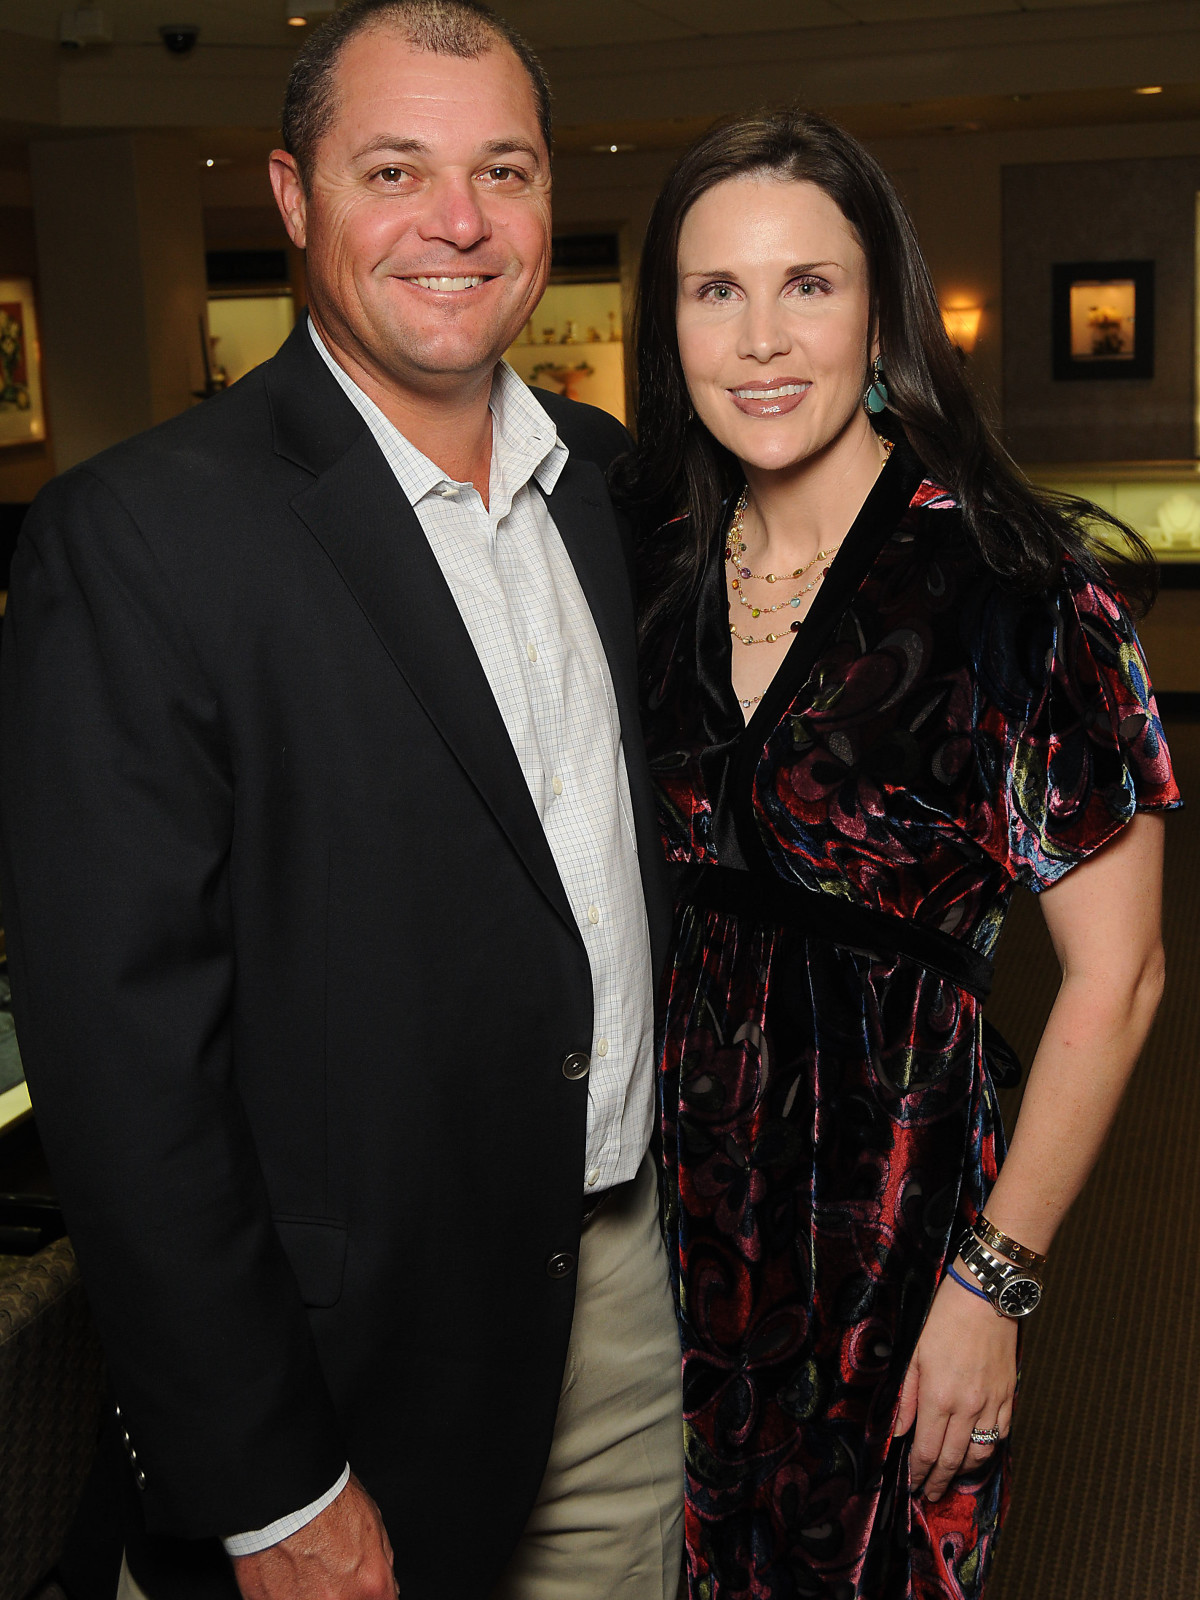 Houston, Project 88 kick-off party, October 2015, Jeff and Kathleen Zinn